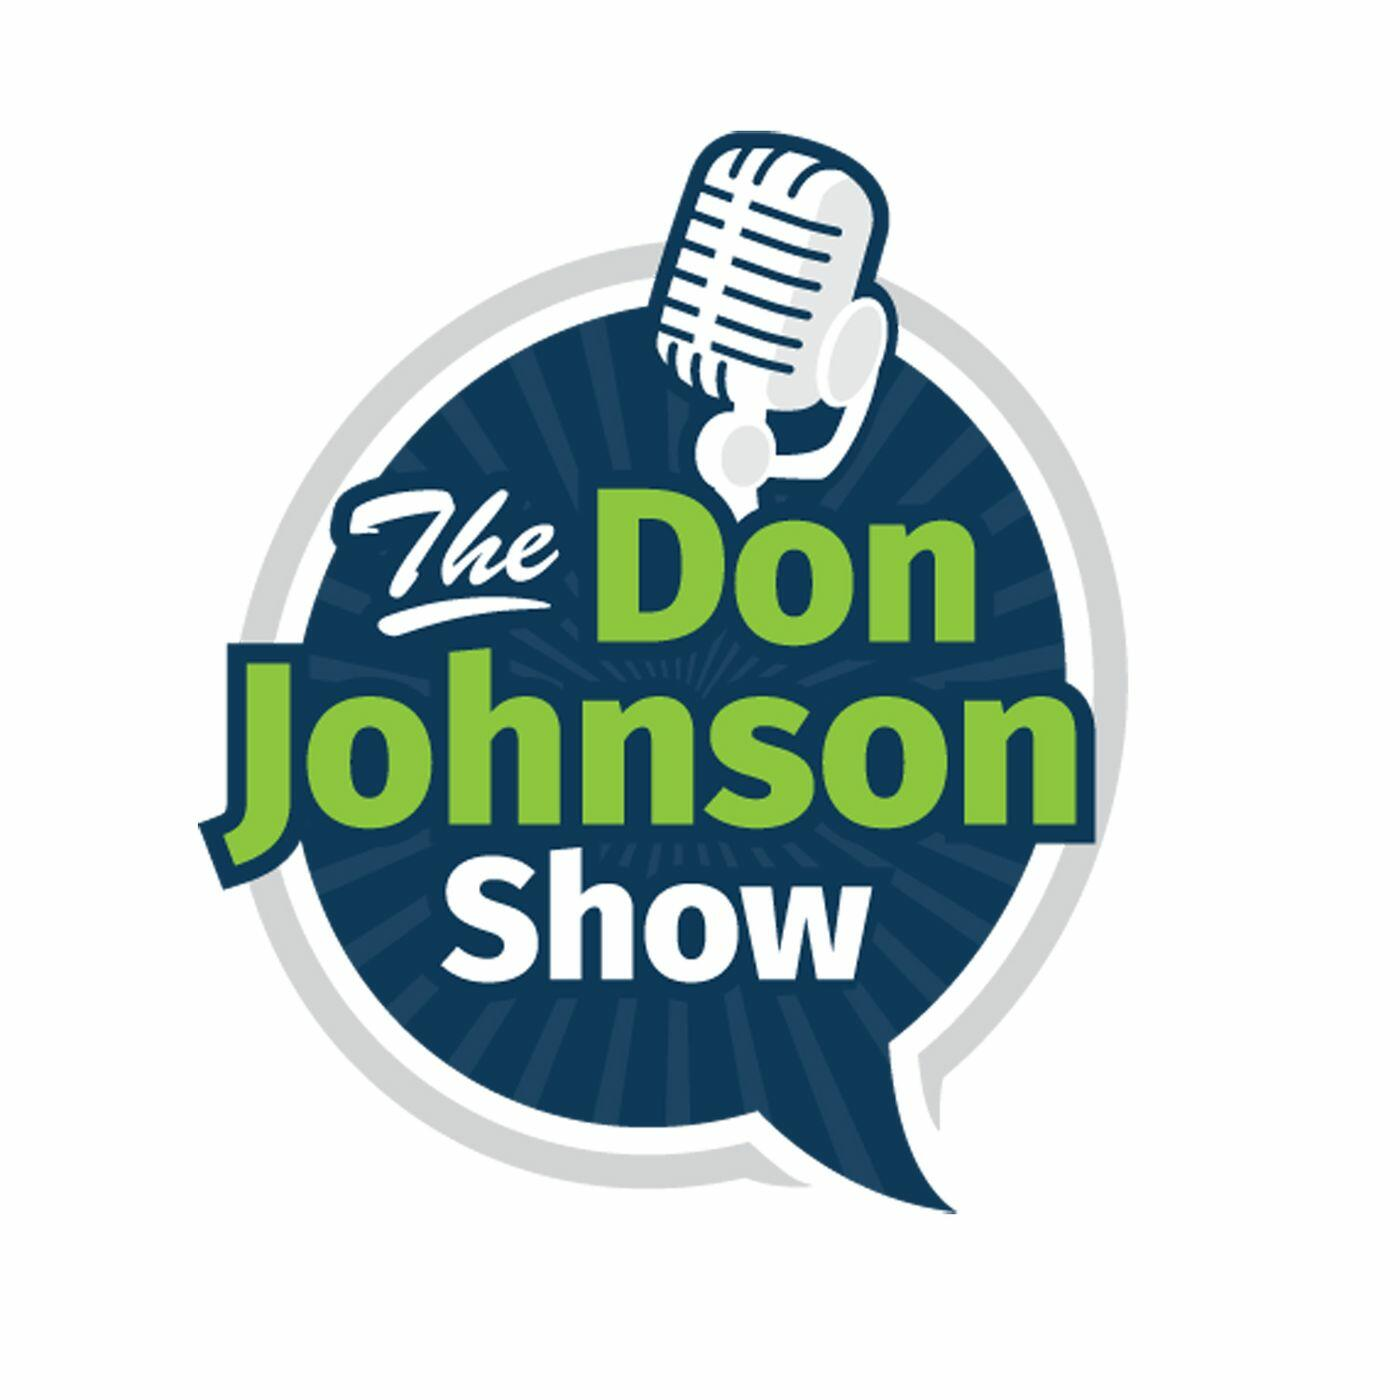 The Don Johnson Show